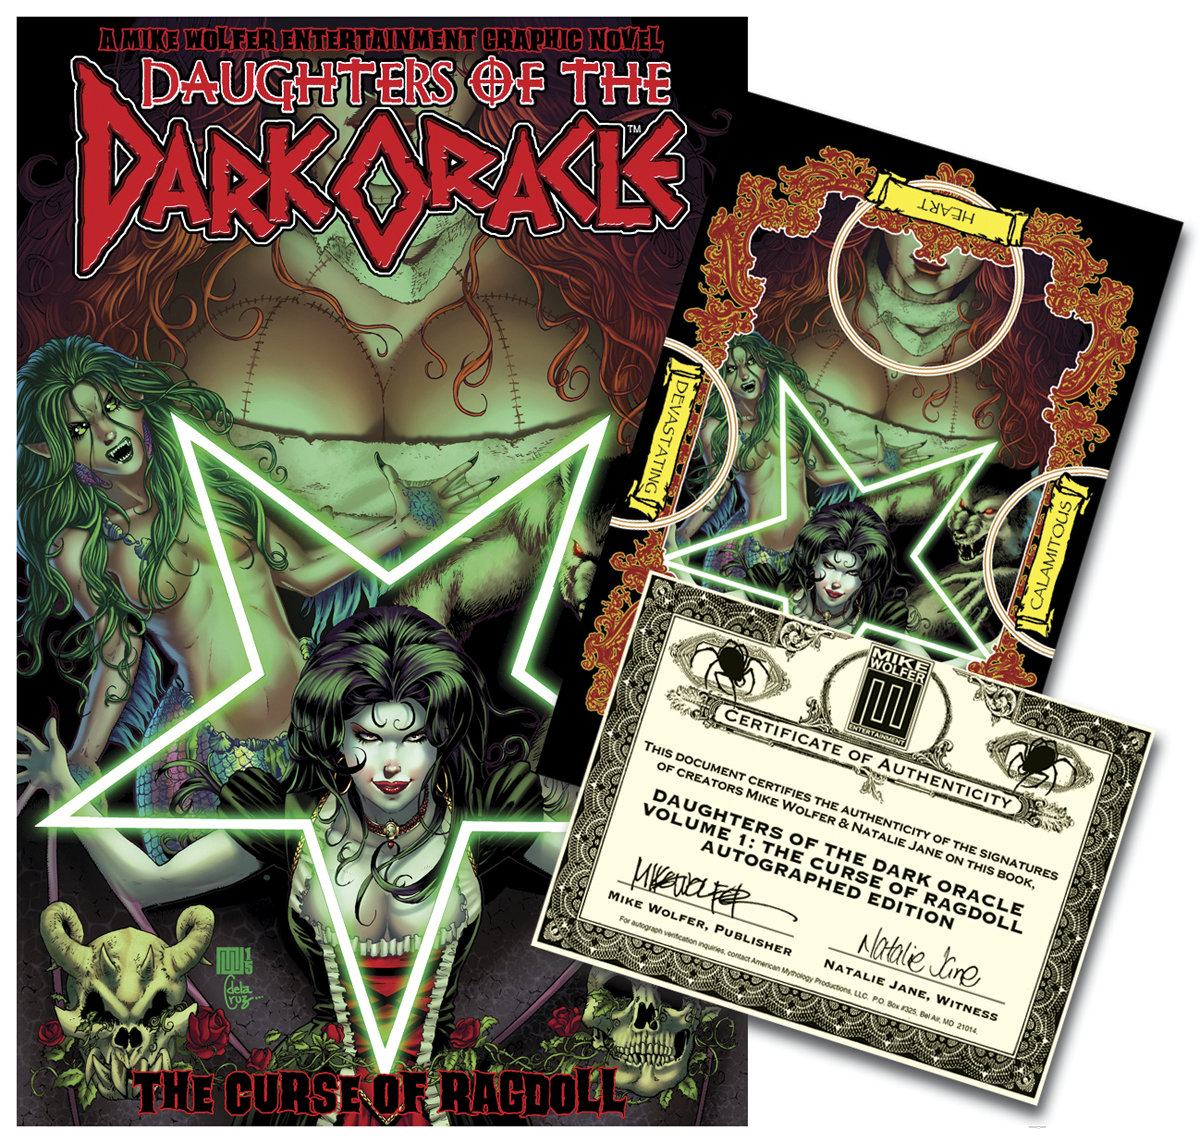 DAUGHTERS OF THE DARK ORACLE TP VOL 01 SIGNED ED